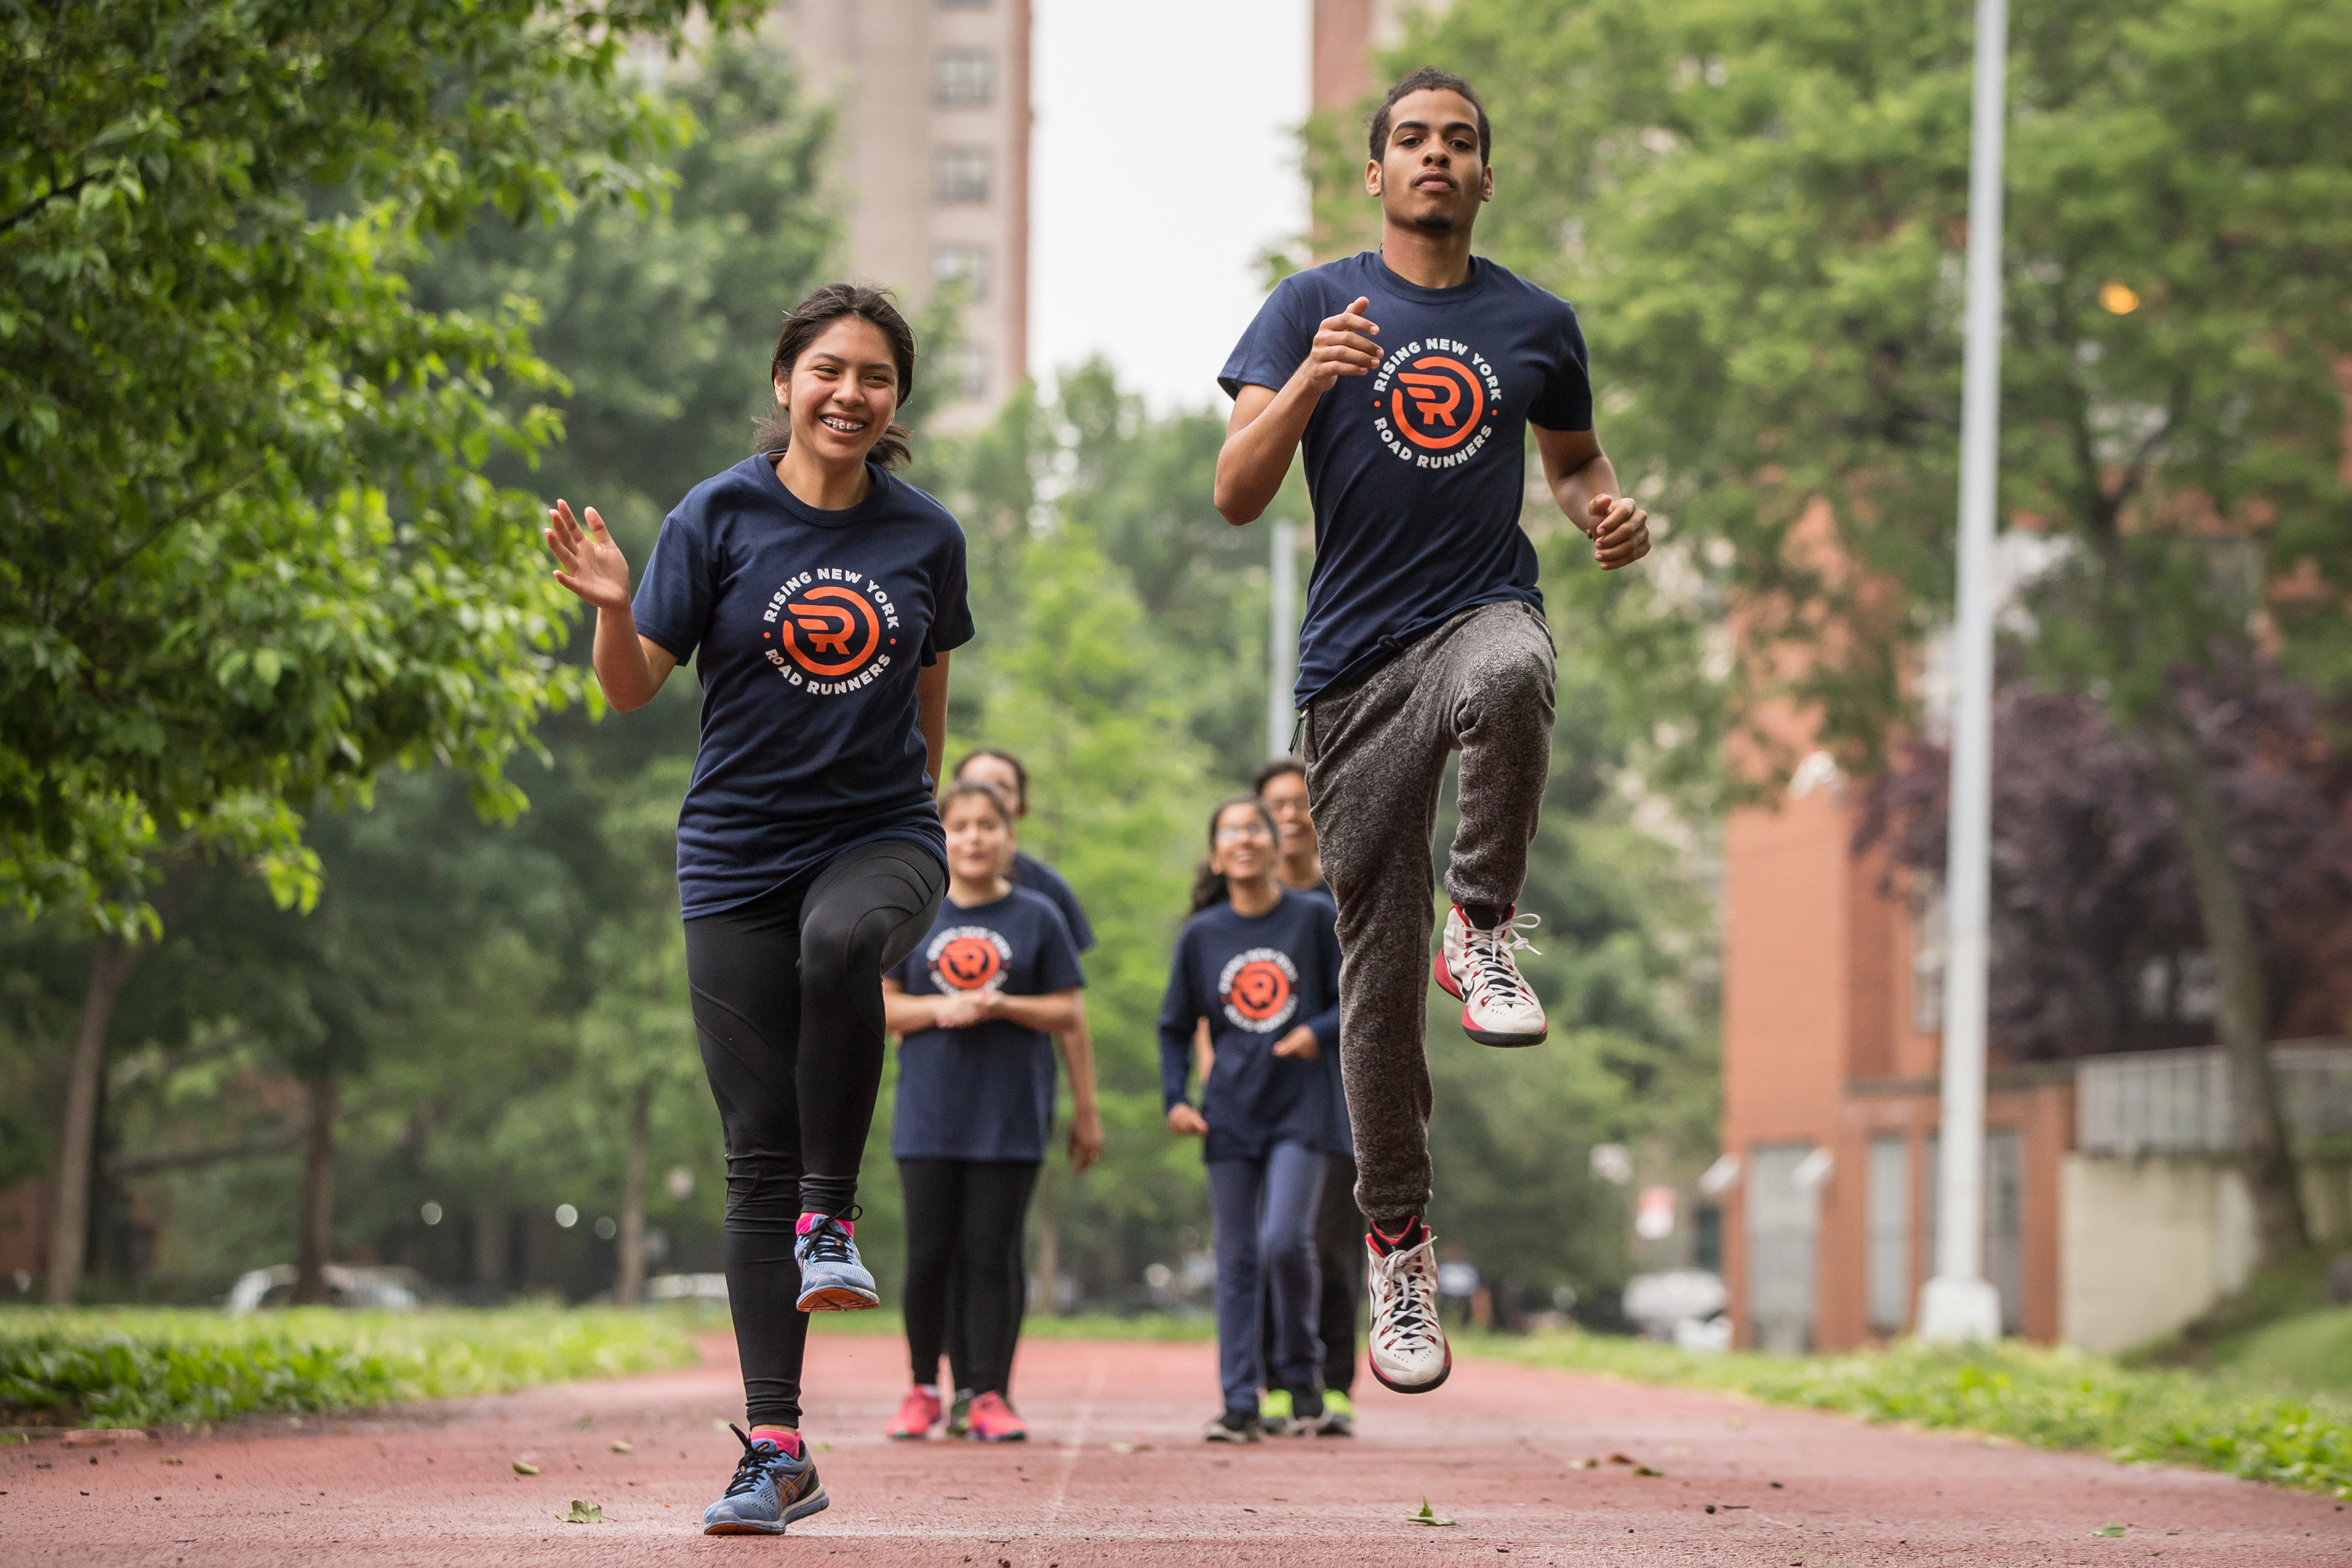 Rising New York Road Runners program for families in NYC